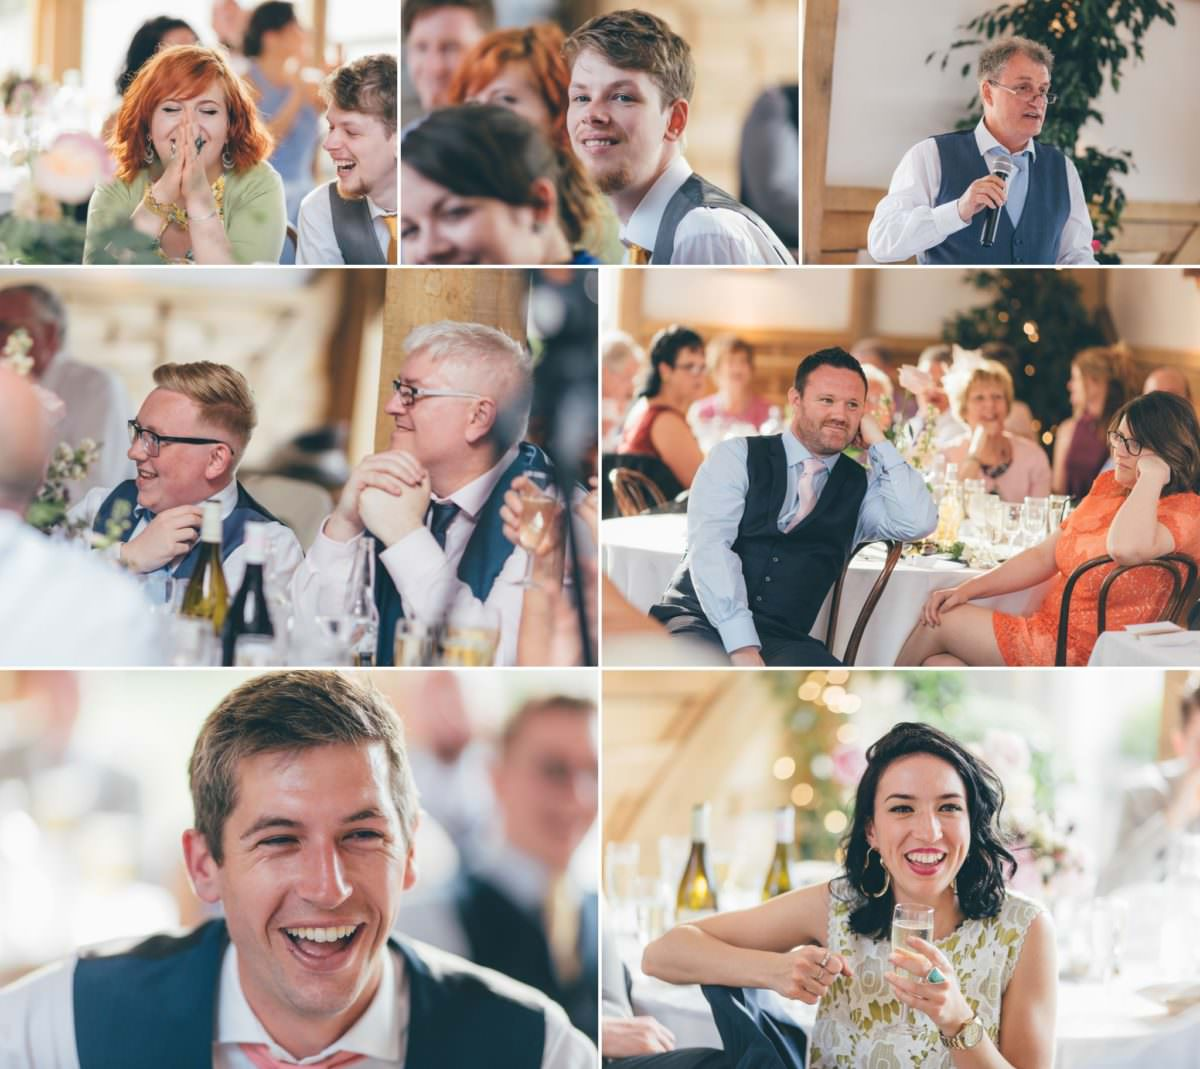 cripps_barn_gloucesterhsire_welsh_wedding_photographer_rachel_lambert_photography_jordan_amy_ 117